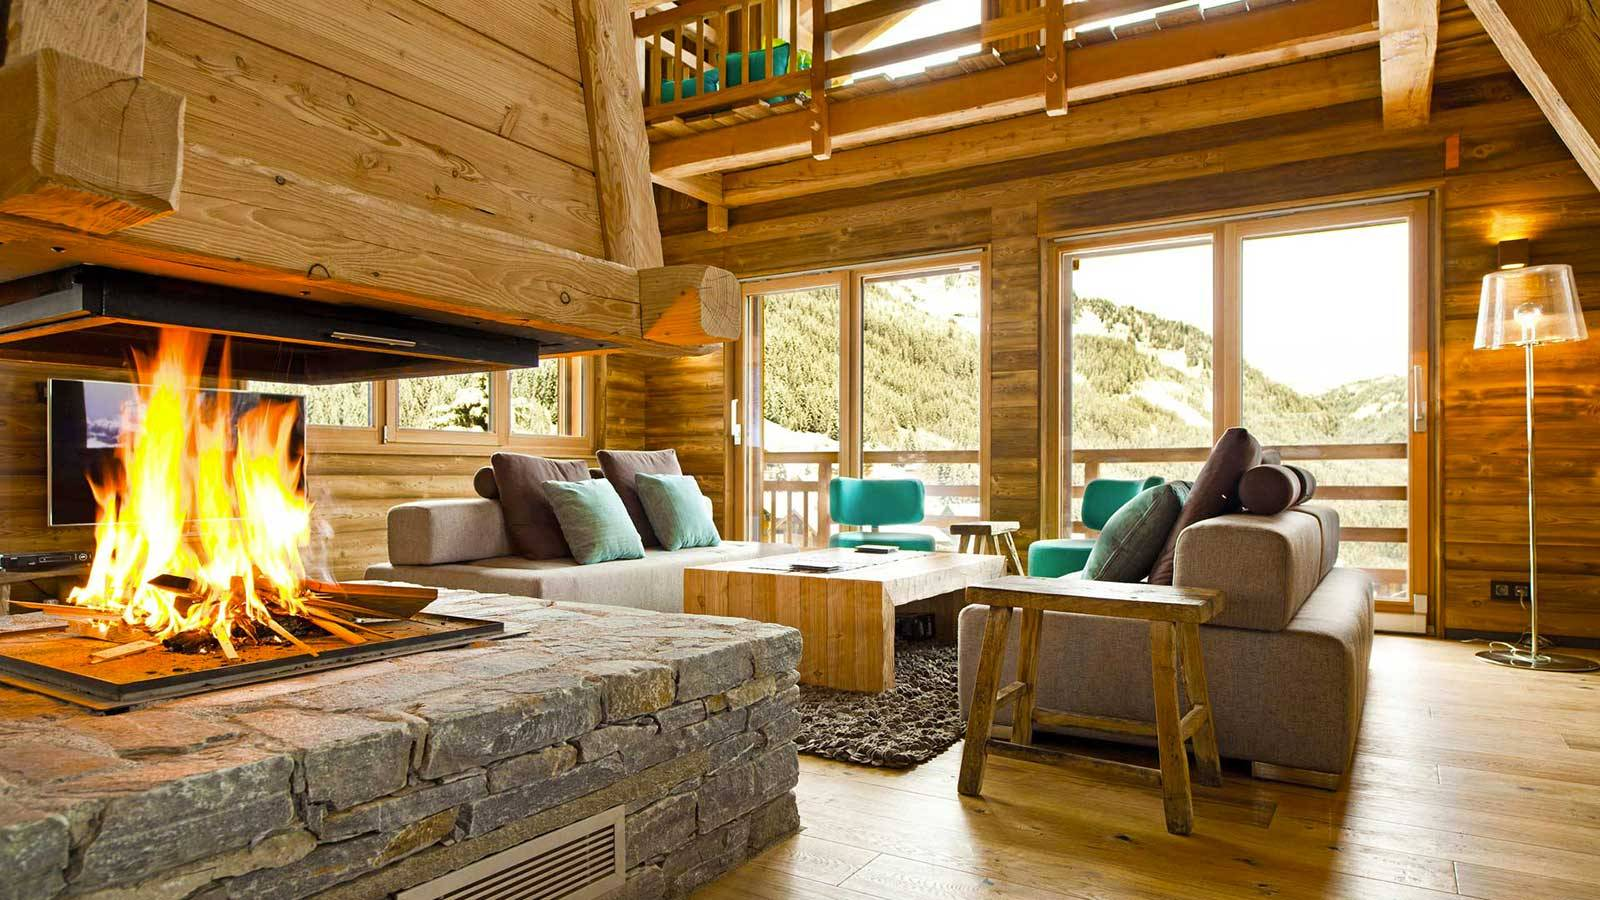 Emejing chalet en bois interieur gallery design trends for Decoration interieur